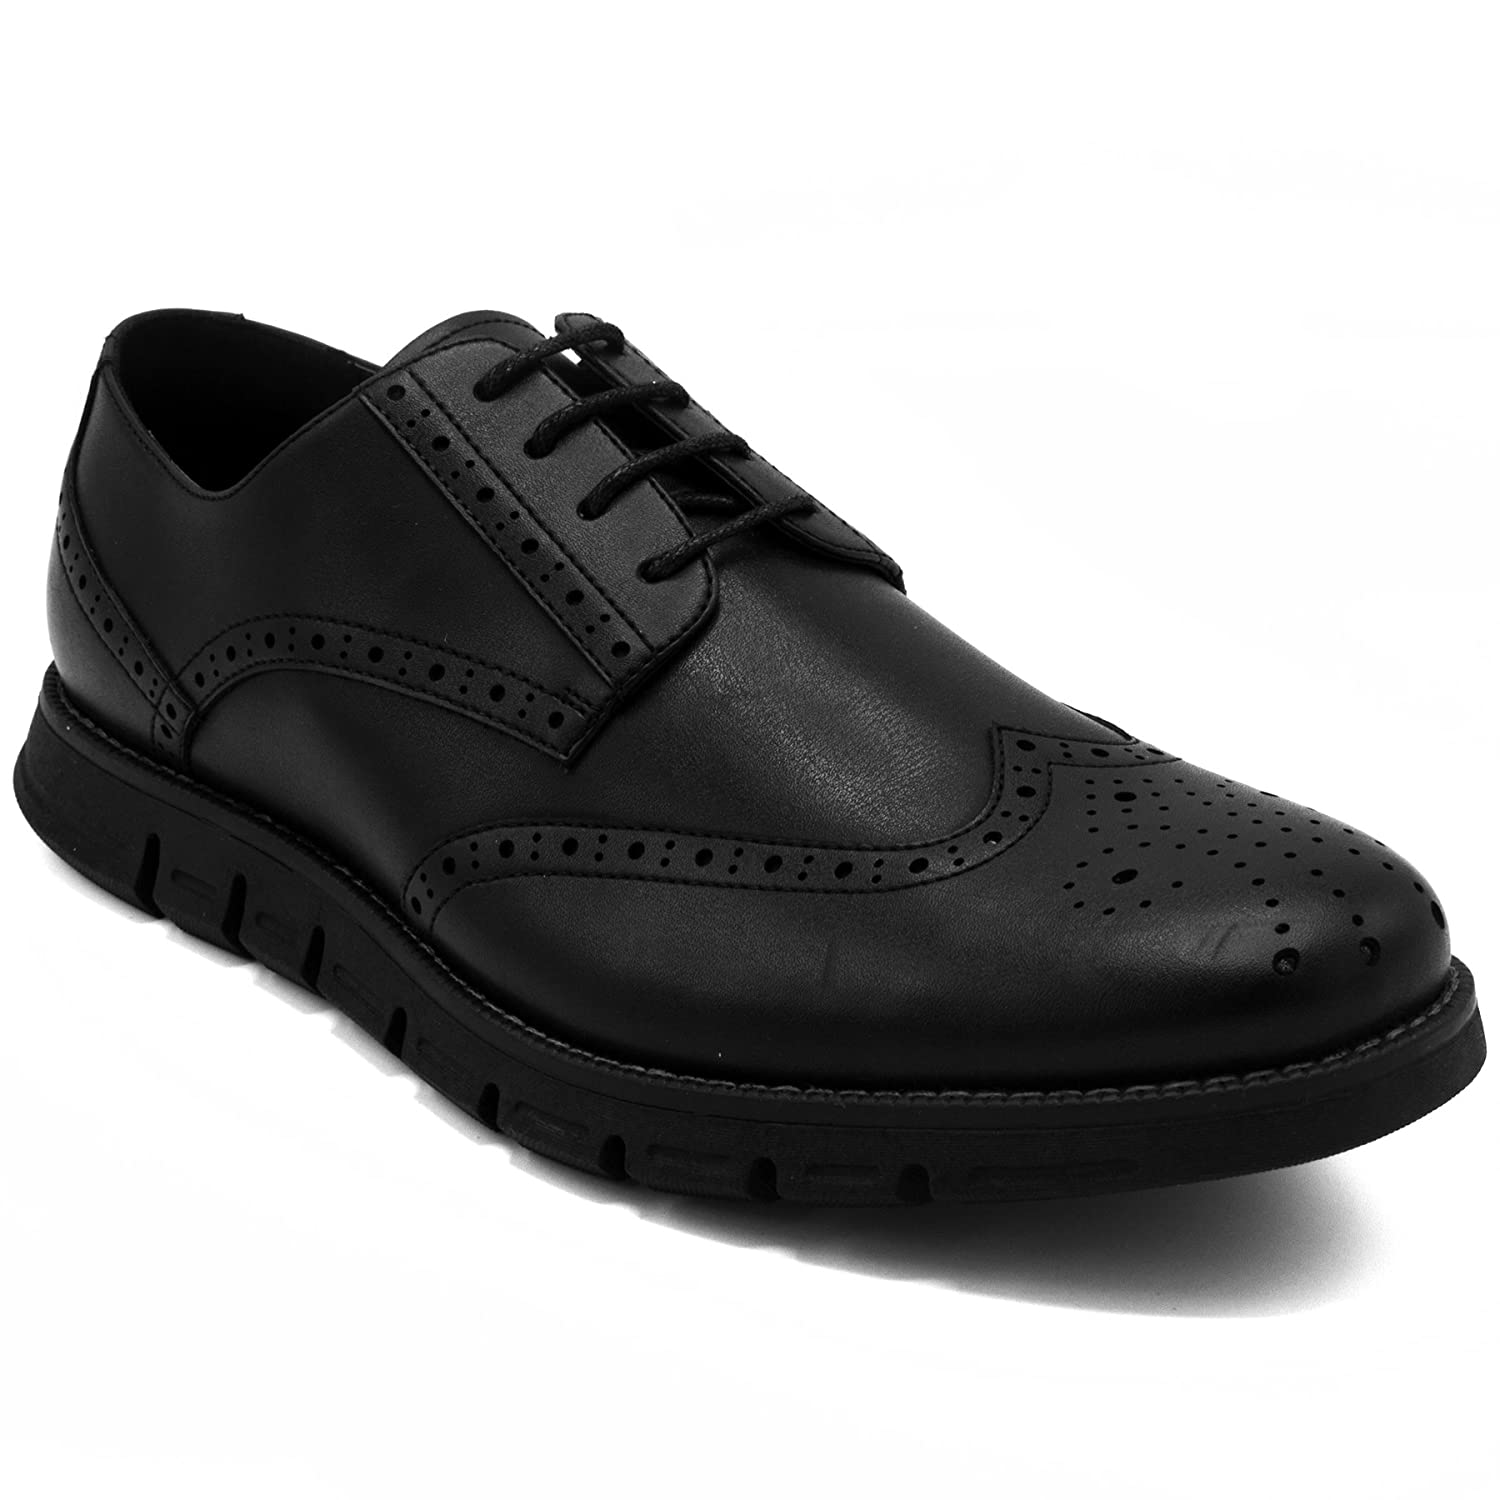 Nautica Men's Wingdeck Oxford Shoe Fashion Sneaker